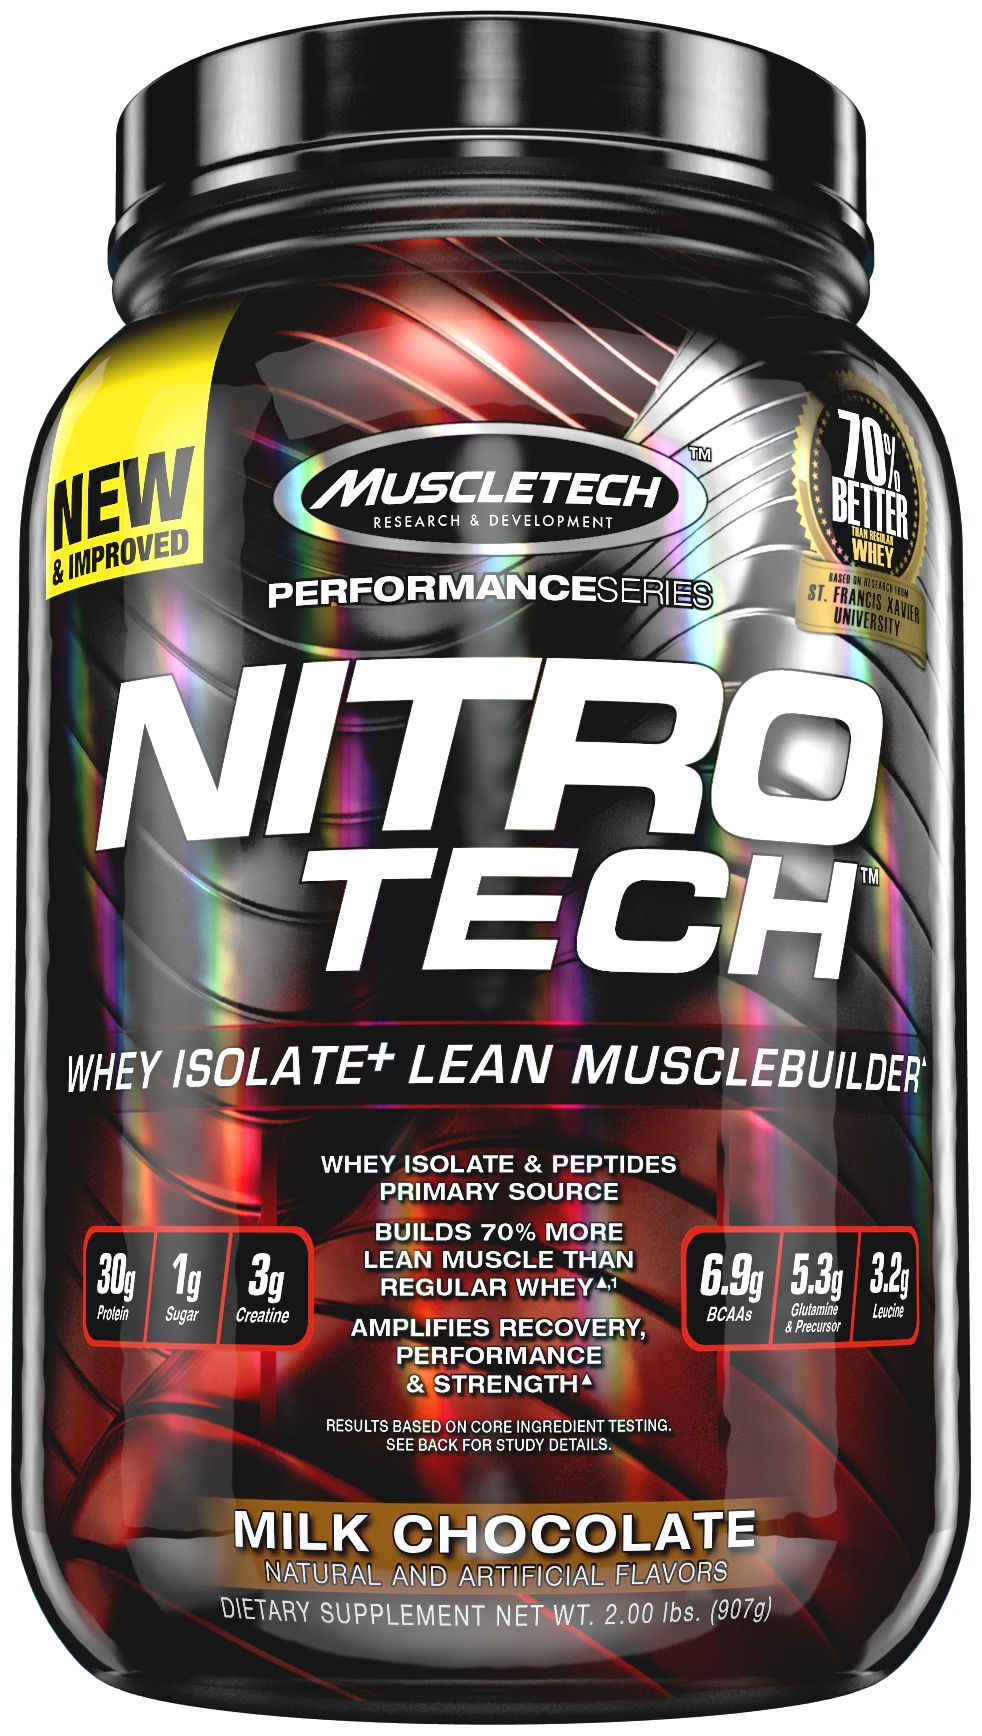 The Best (and Worst) Whey Protein Powders Nitro tech Muscle gain supplements Best protein powder